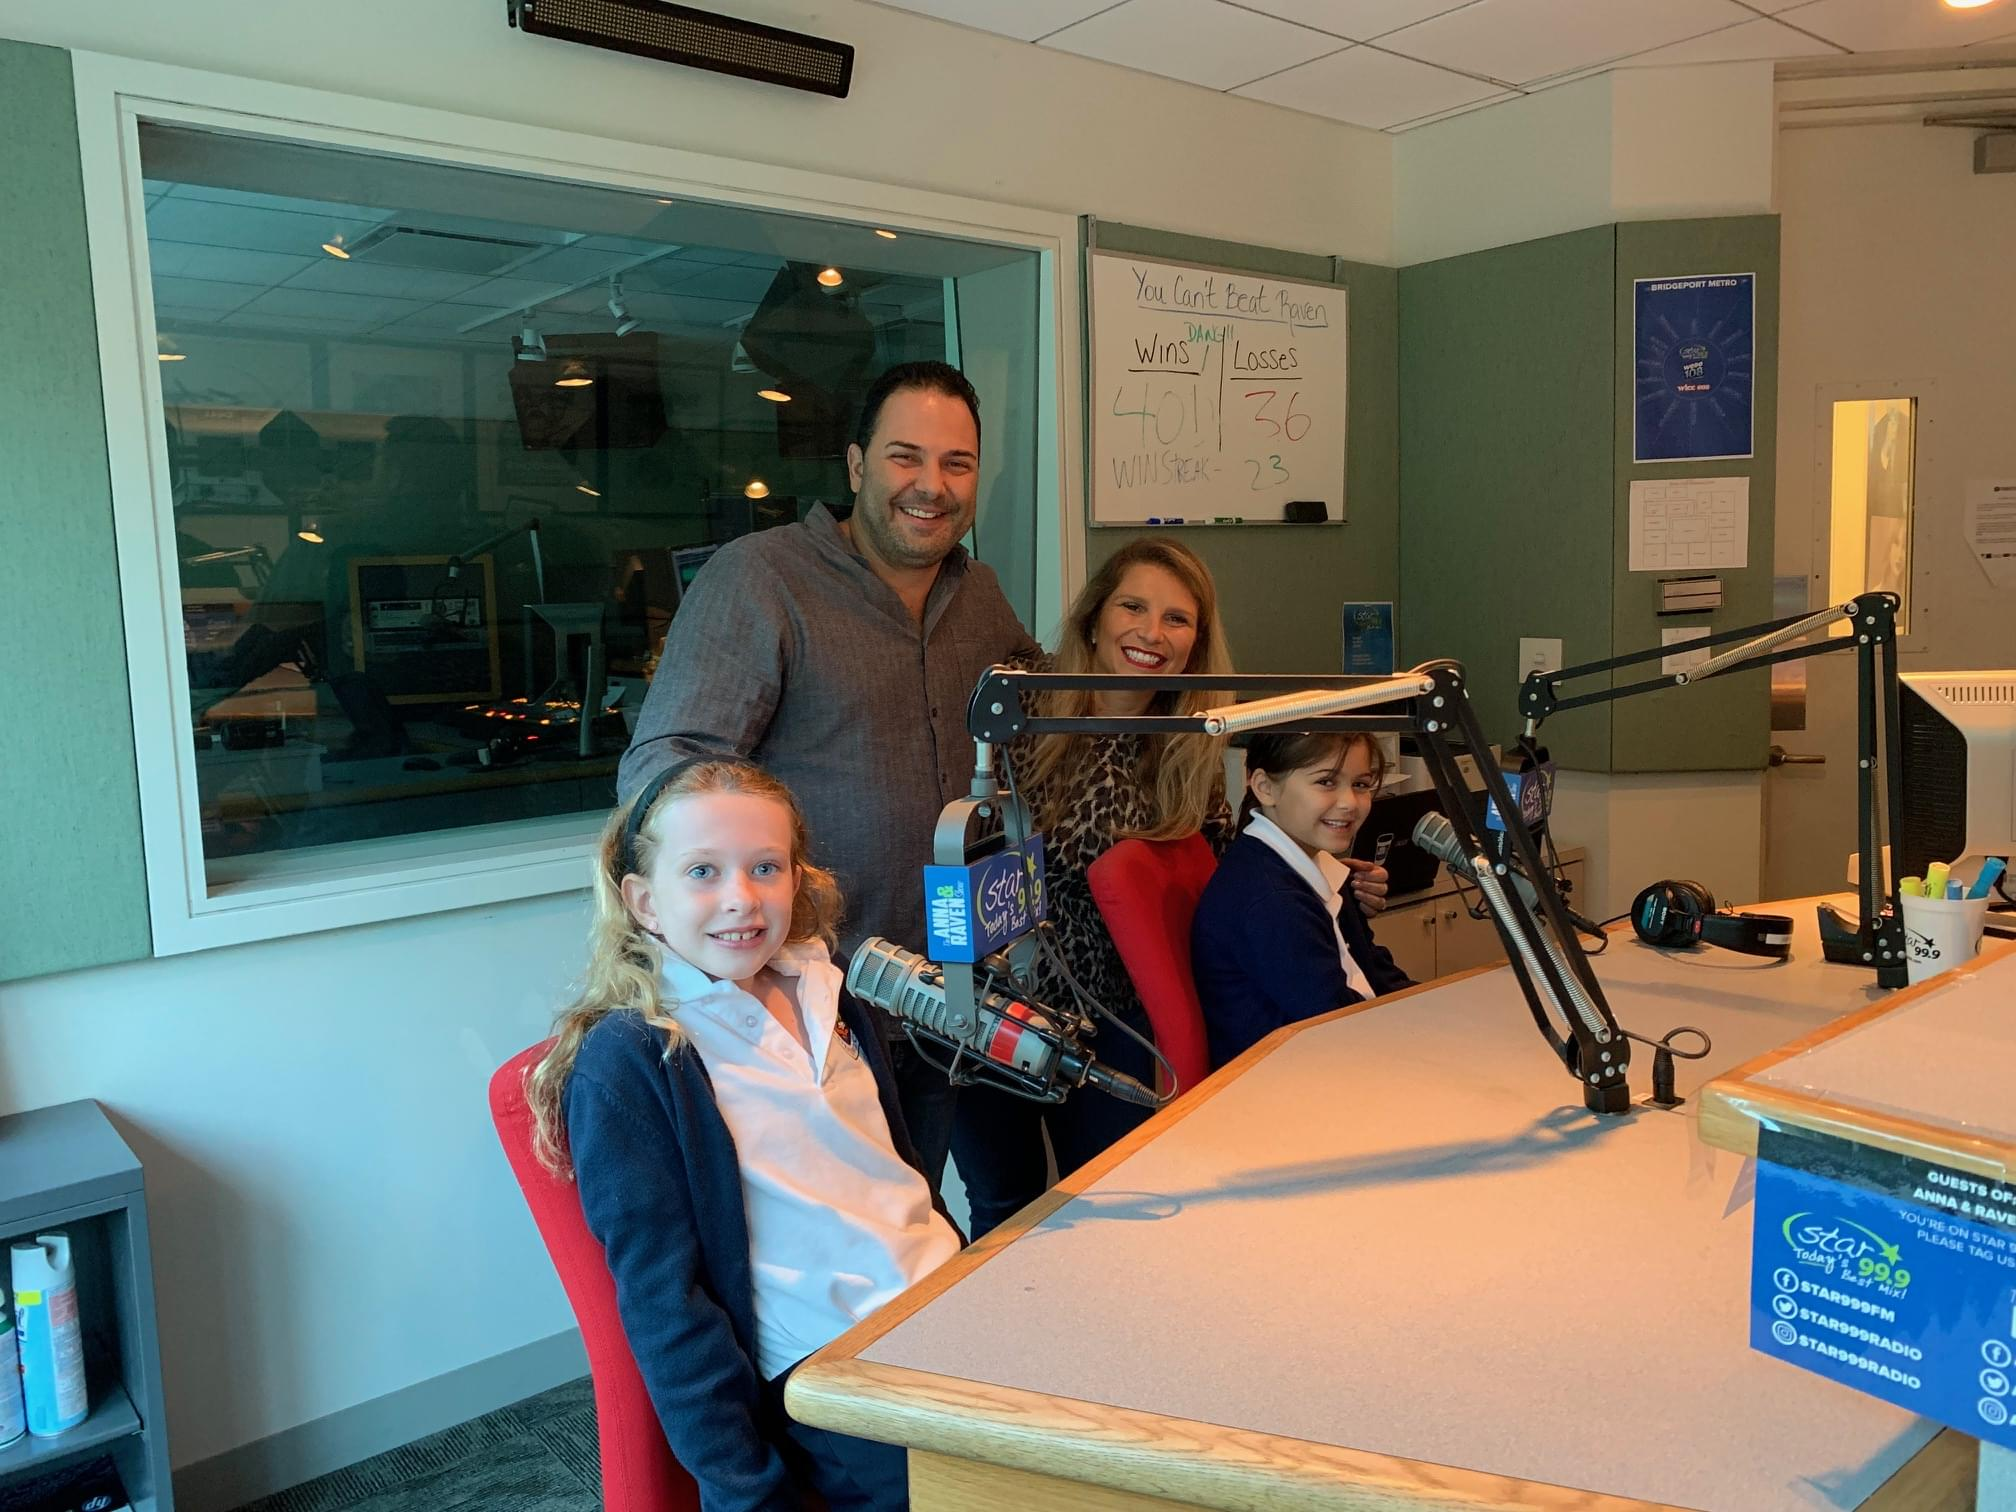 60 Seconds Behind The Scenes- Phoebe and Grace are awesome 8 year olds!